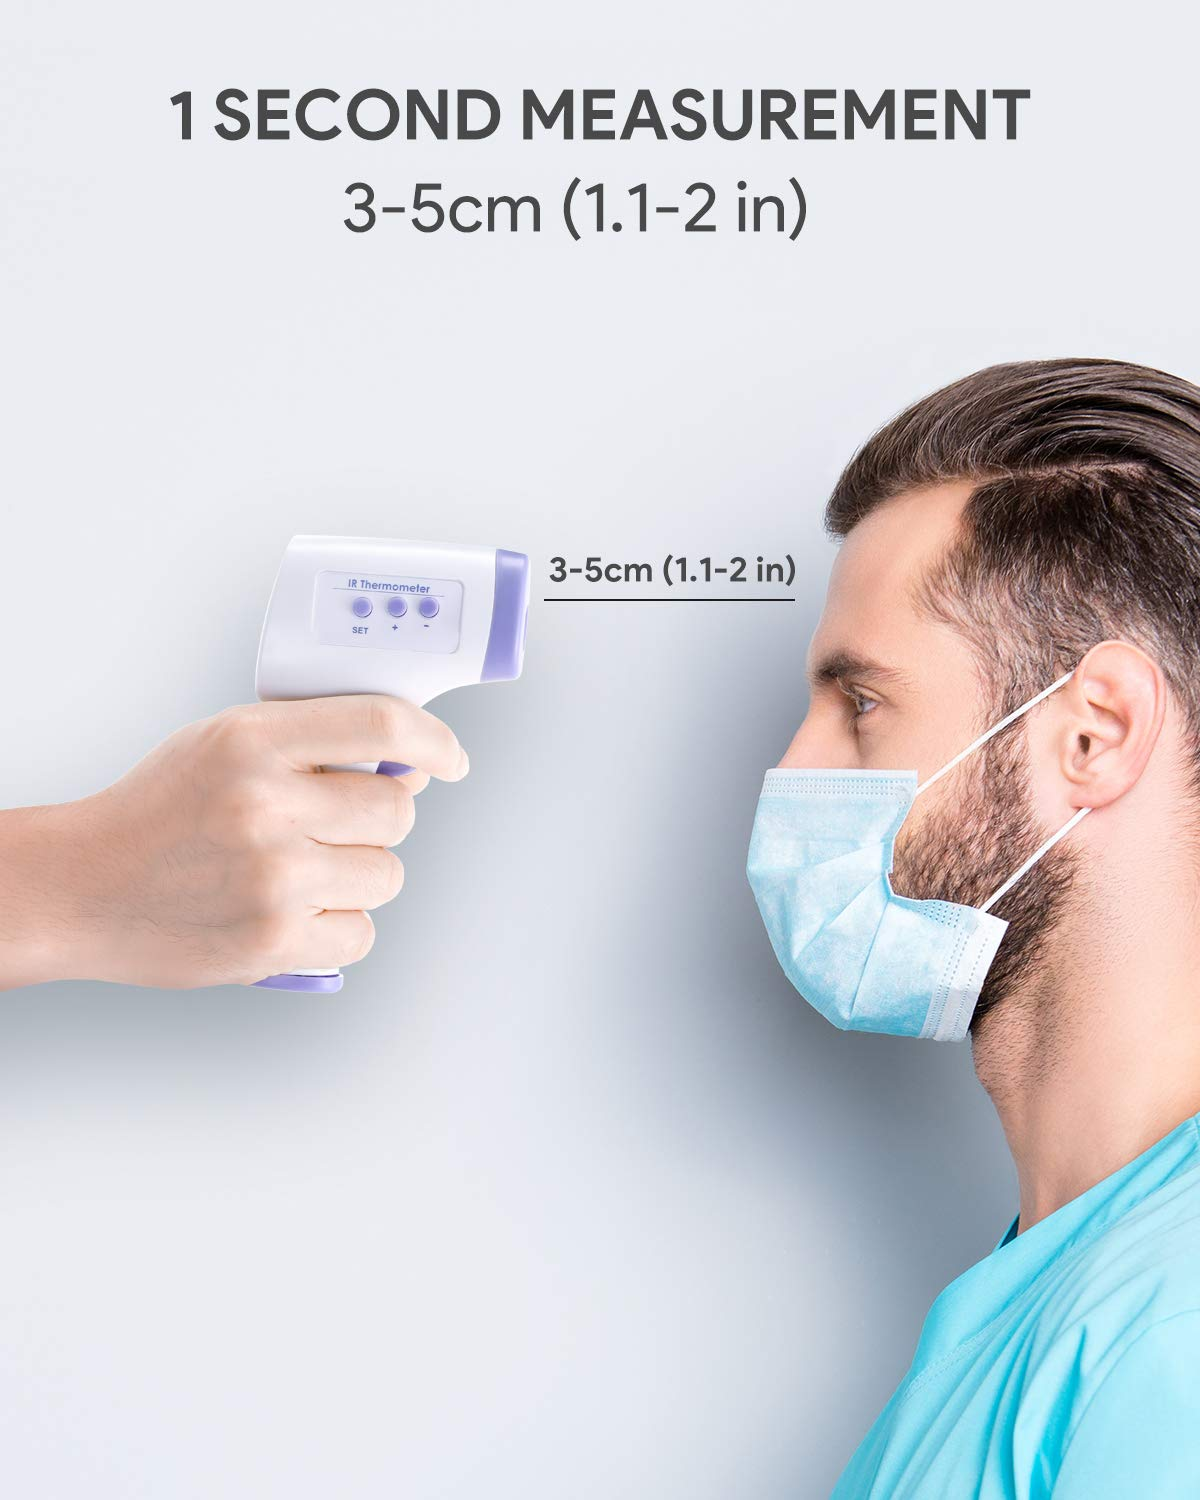 Non-Contact Infrared Thermometer Immediately LCD Display,Digital Forehead Thermometer for Baby Kids and Adults with Fever Alarm【Limited time Discount】